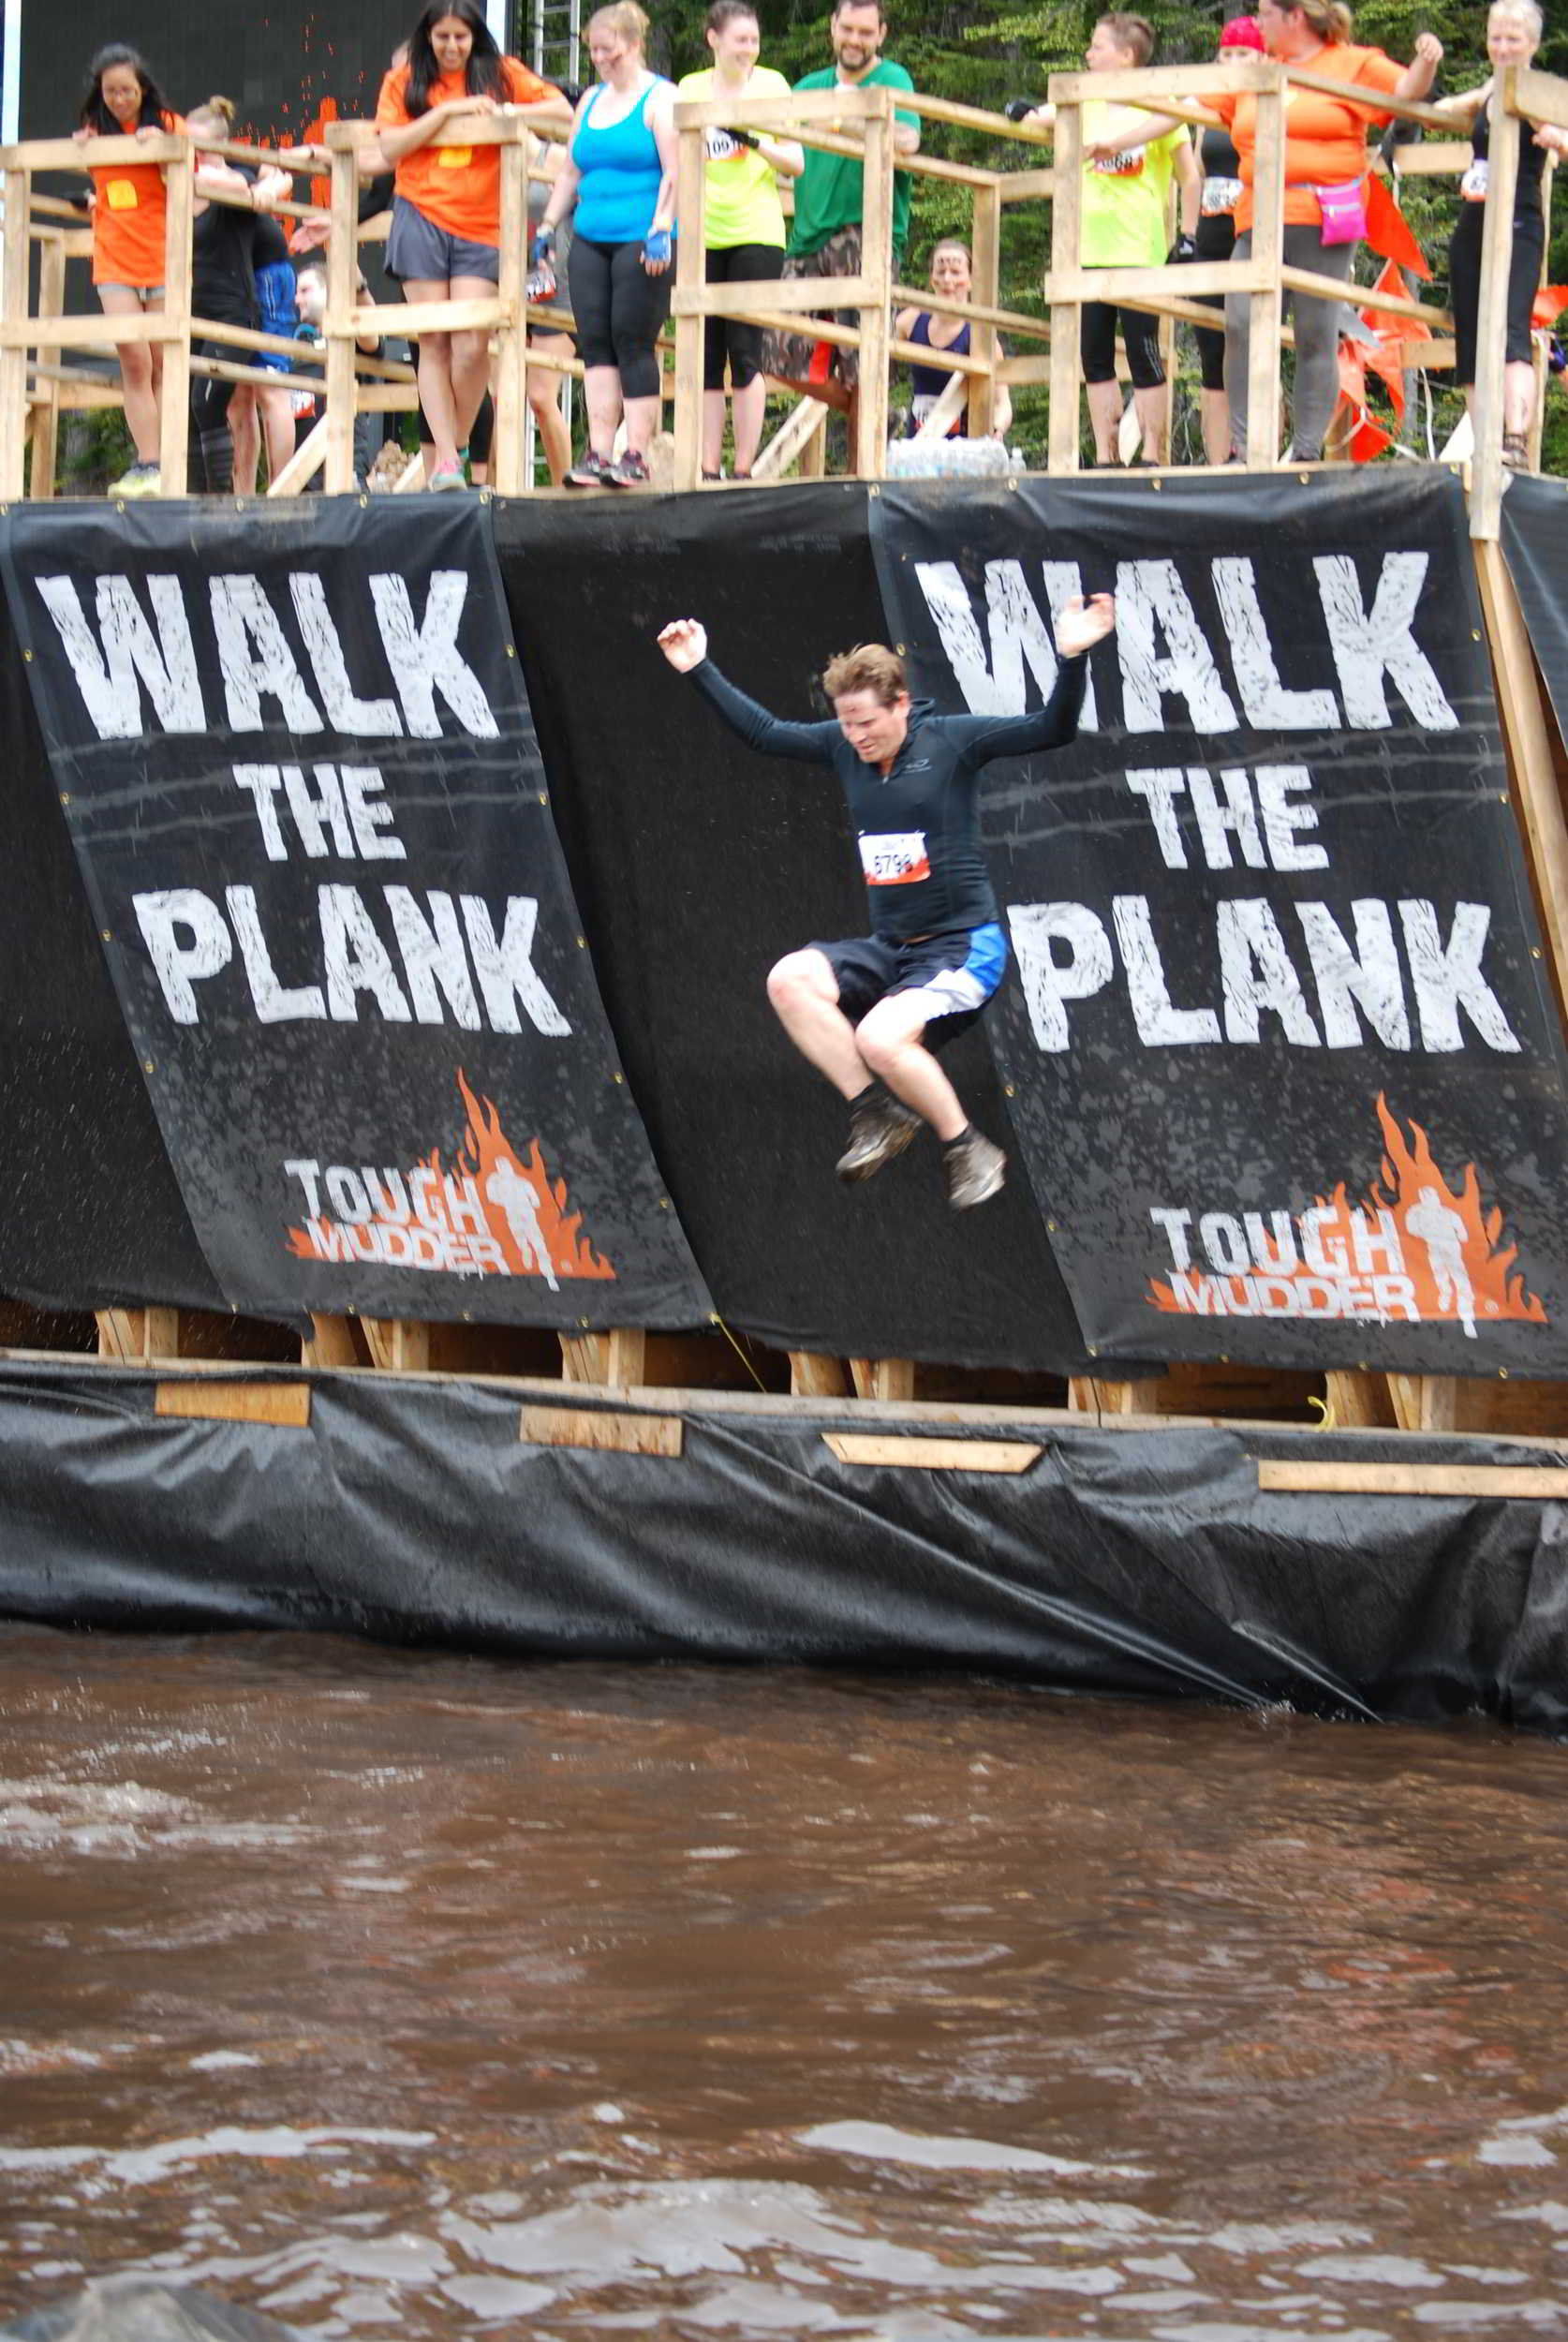 Walking the Plank, Tough Mudder, Whistler, British Columbia, Canada